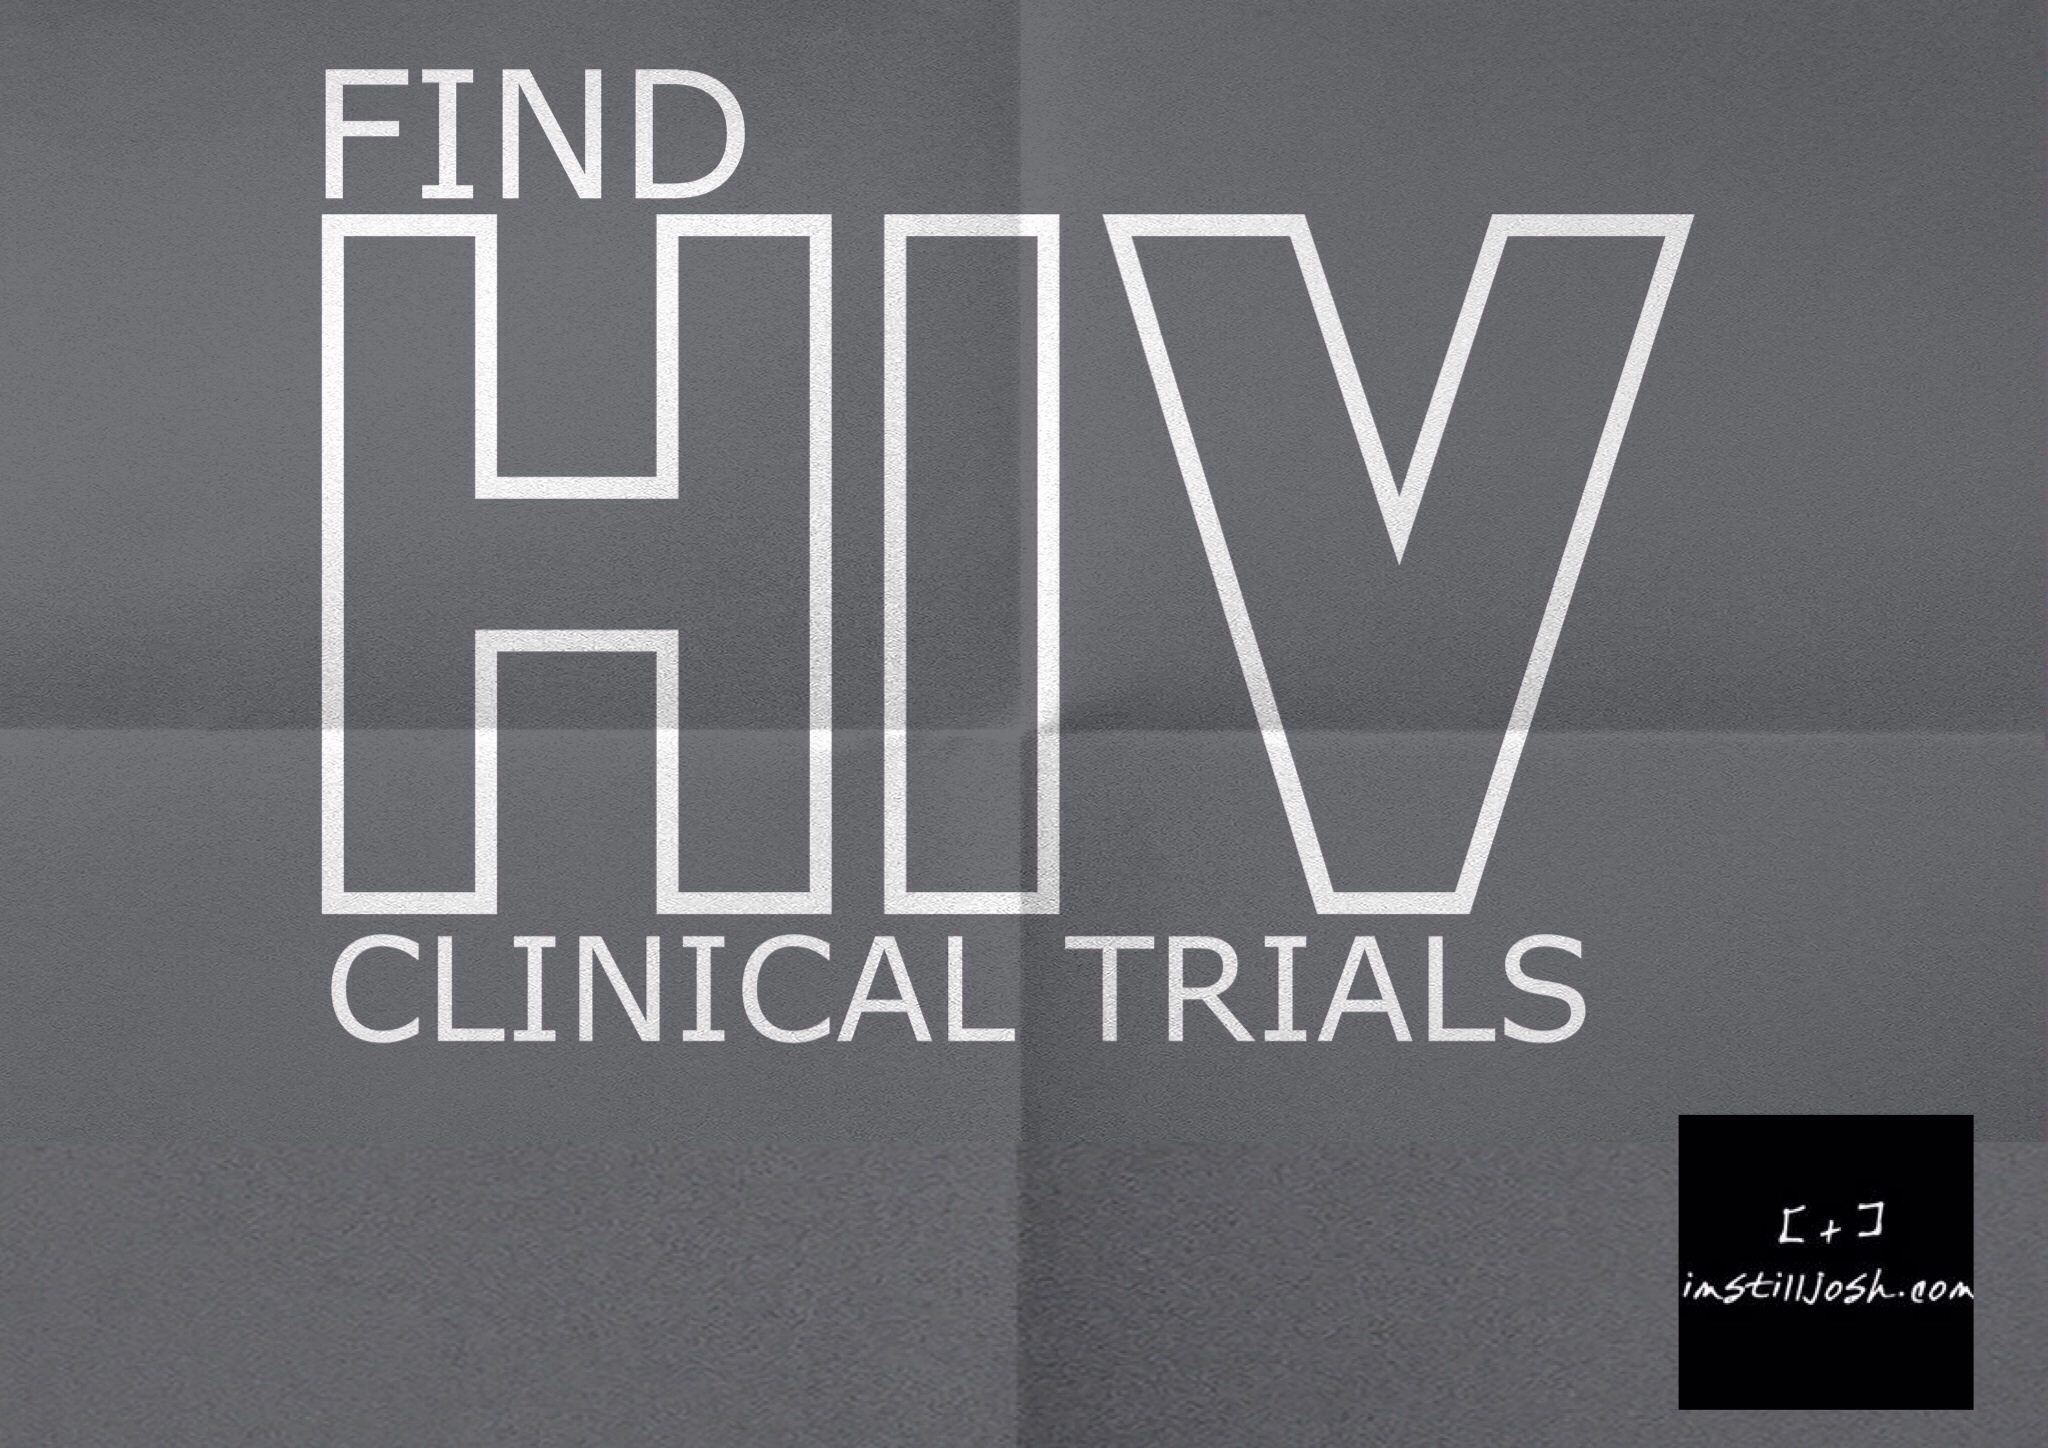 Find HIV Clinical Trials